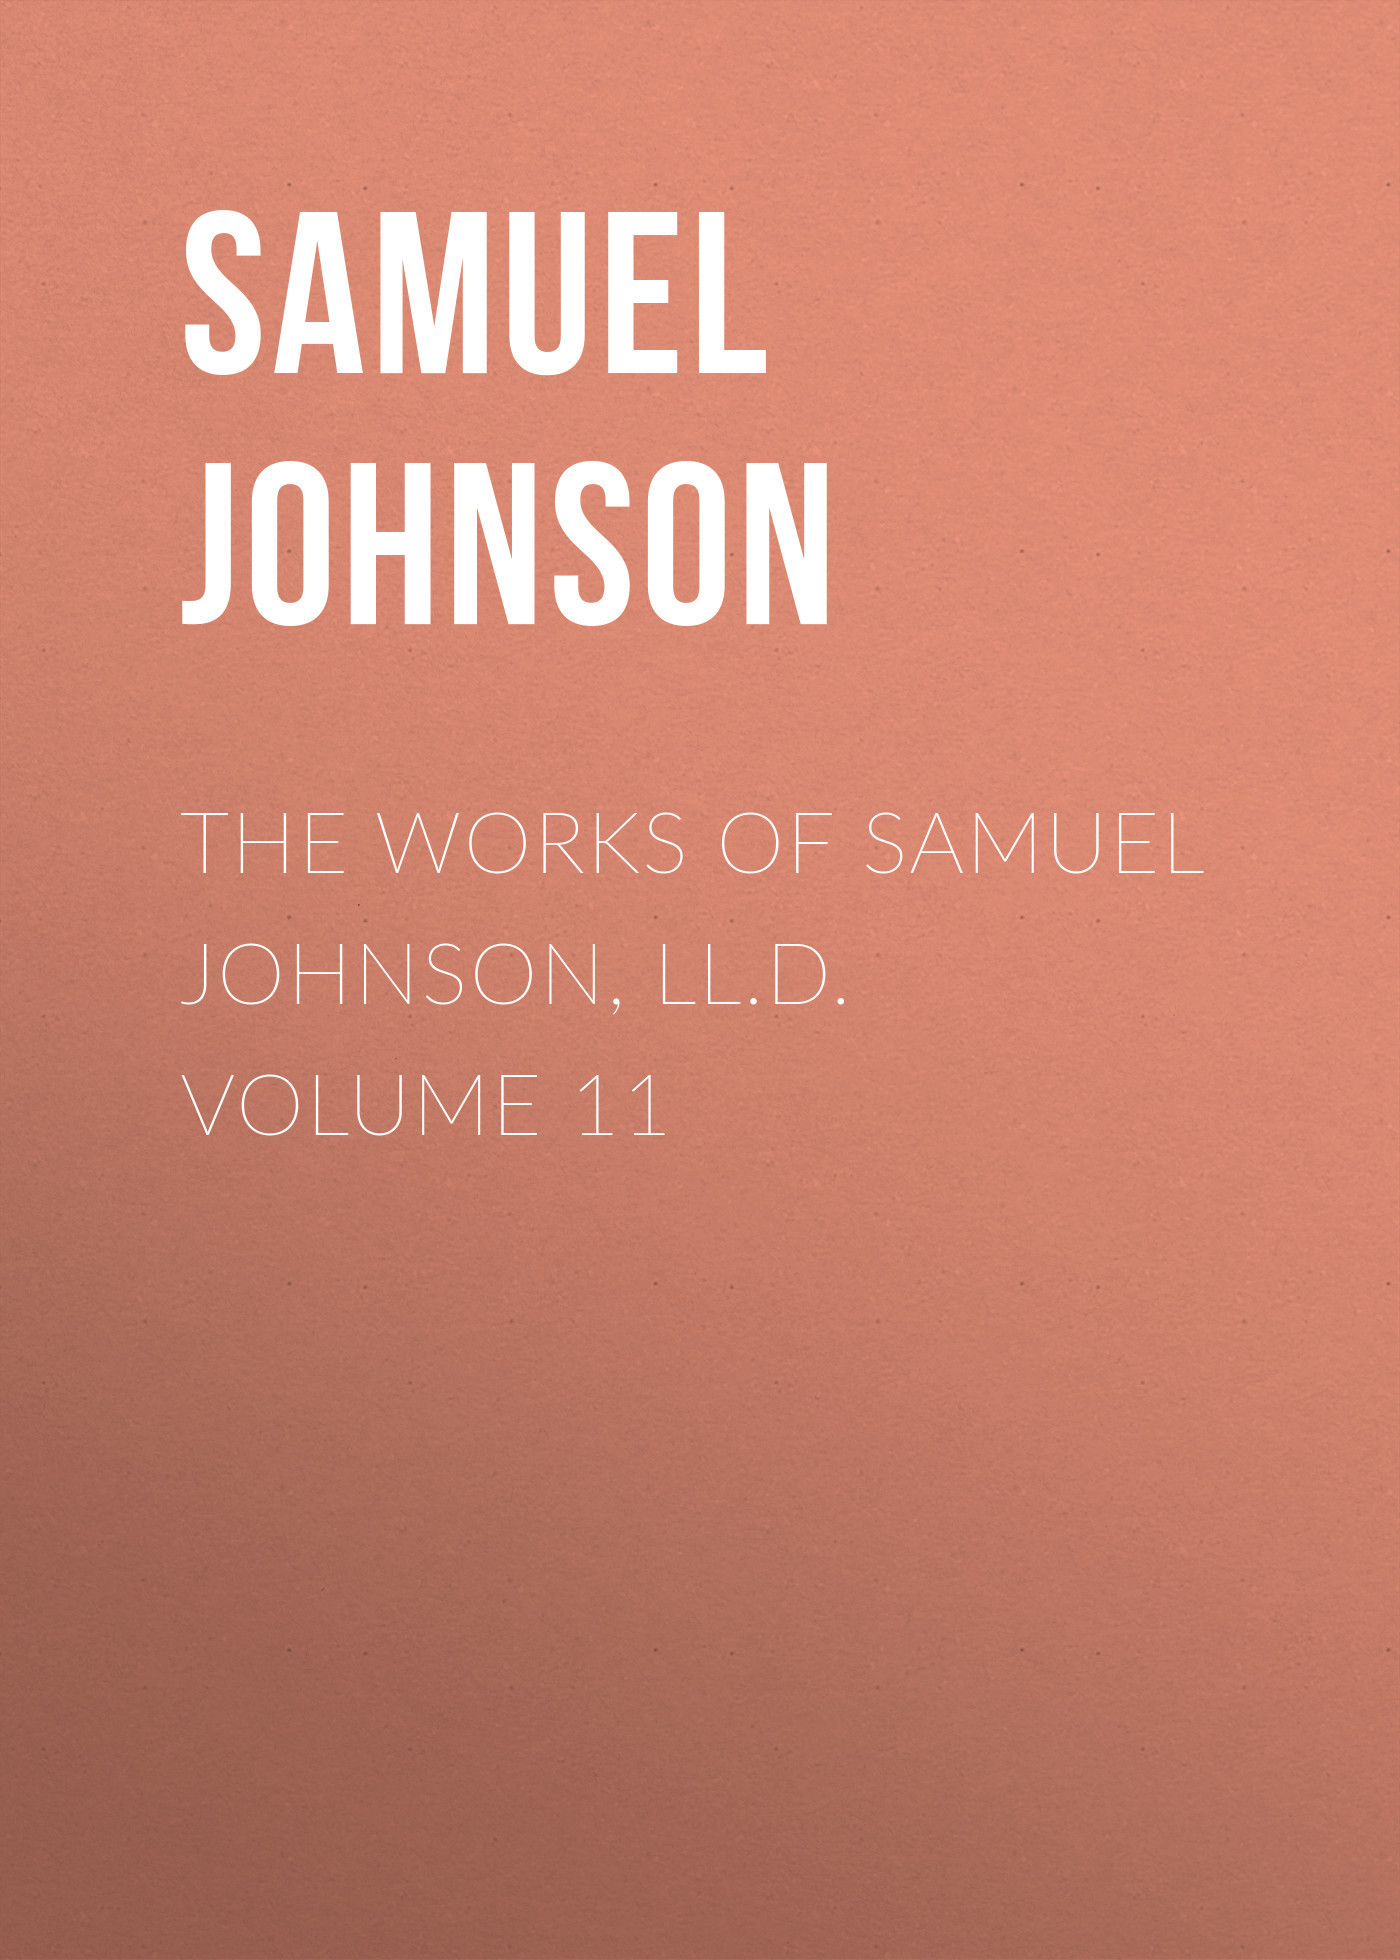 Samuel Johnson The Works of Samuel Johnson, LL.D. Volume 11 sir samuel samuel sir vize pli o